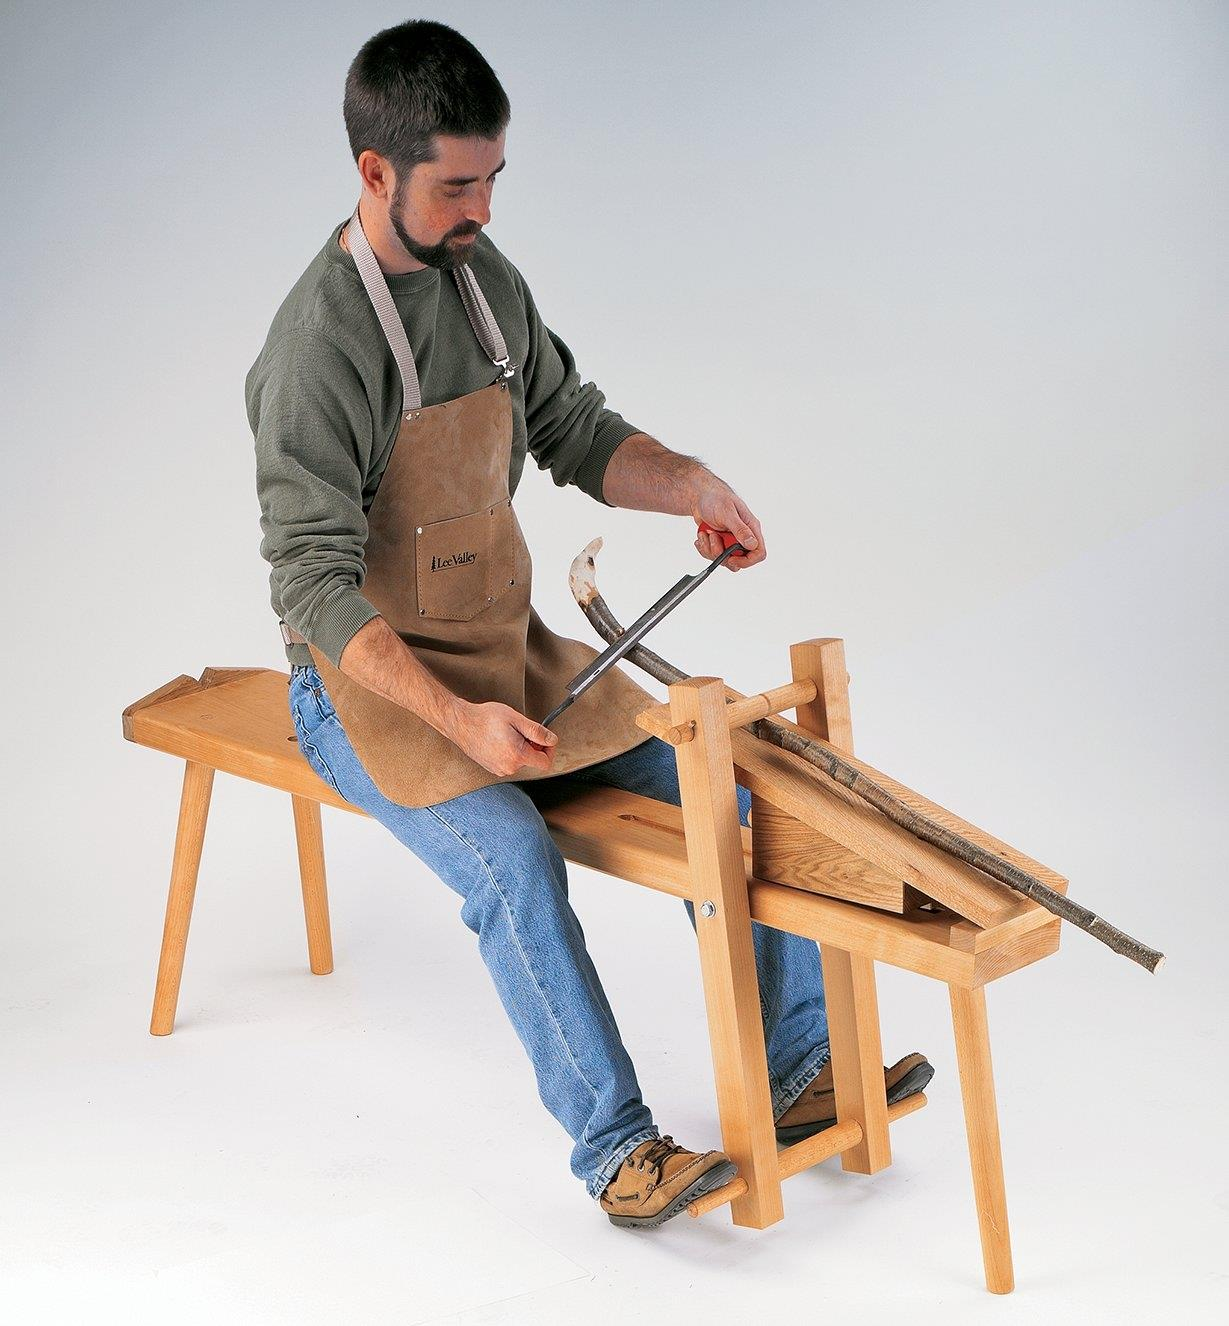 A man seated on a shaving horse uses a drawknife to shape a workpiece